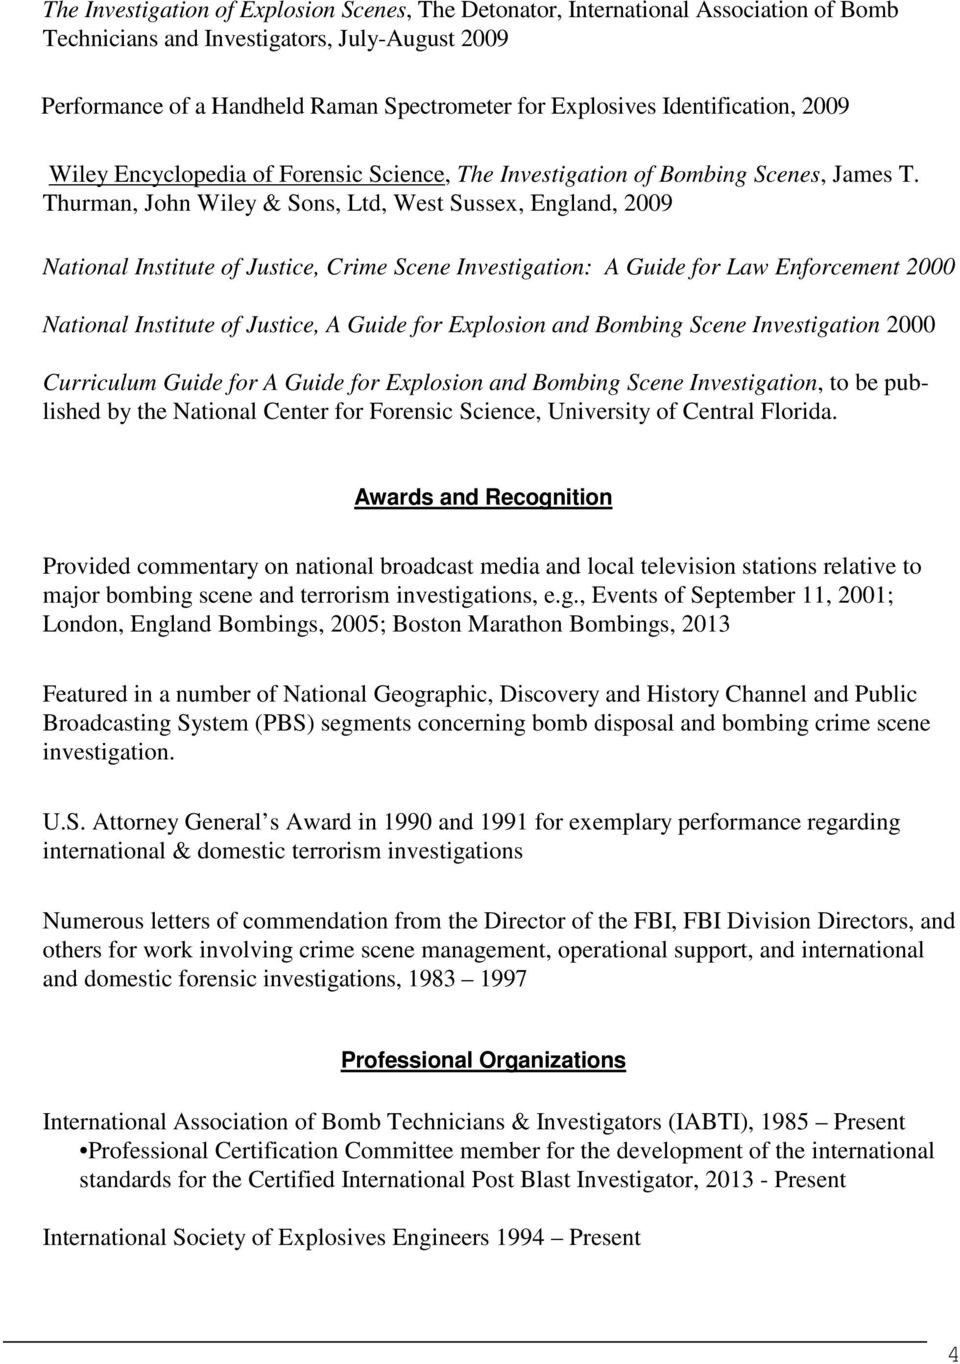 Thurman, John Wiley & Sons, Ltd, West Sussex, England, 2009 National Institute of Justice, Crime Scene Investigation: A Guide for Law Enforcement 2000 National Institute of Justice, A Guide for